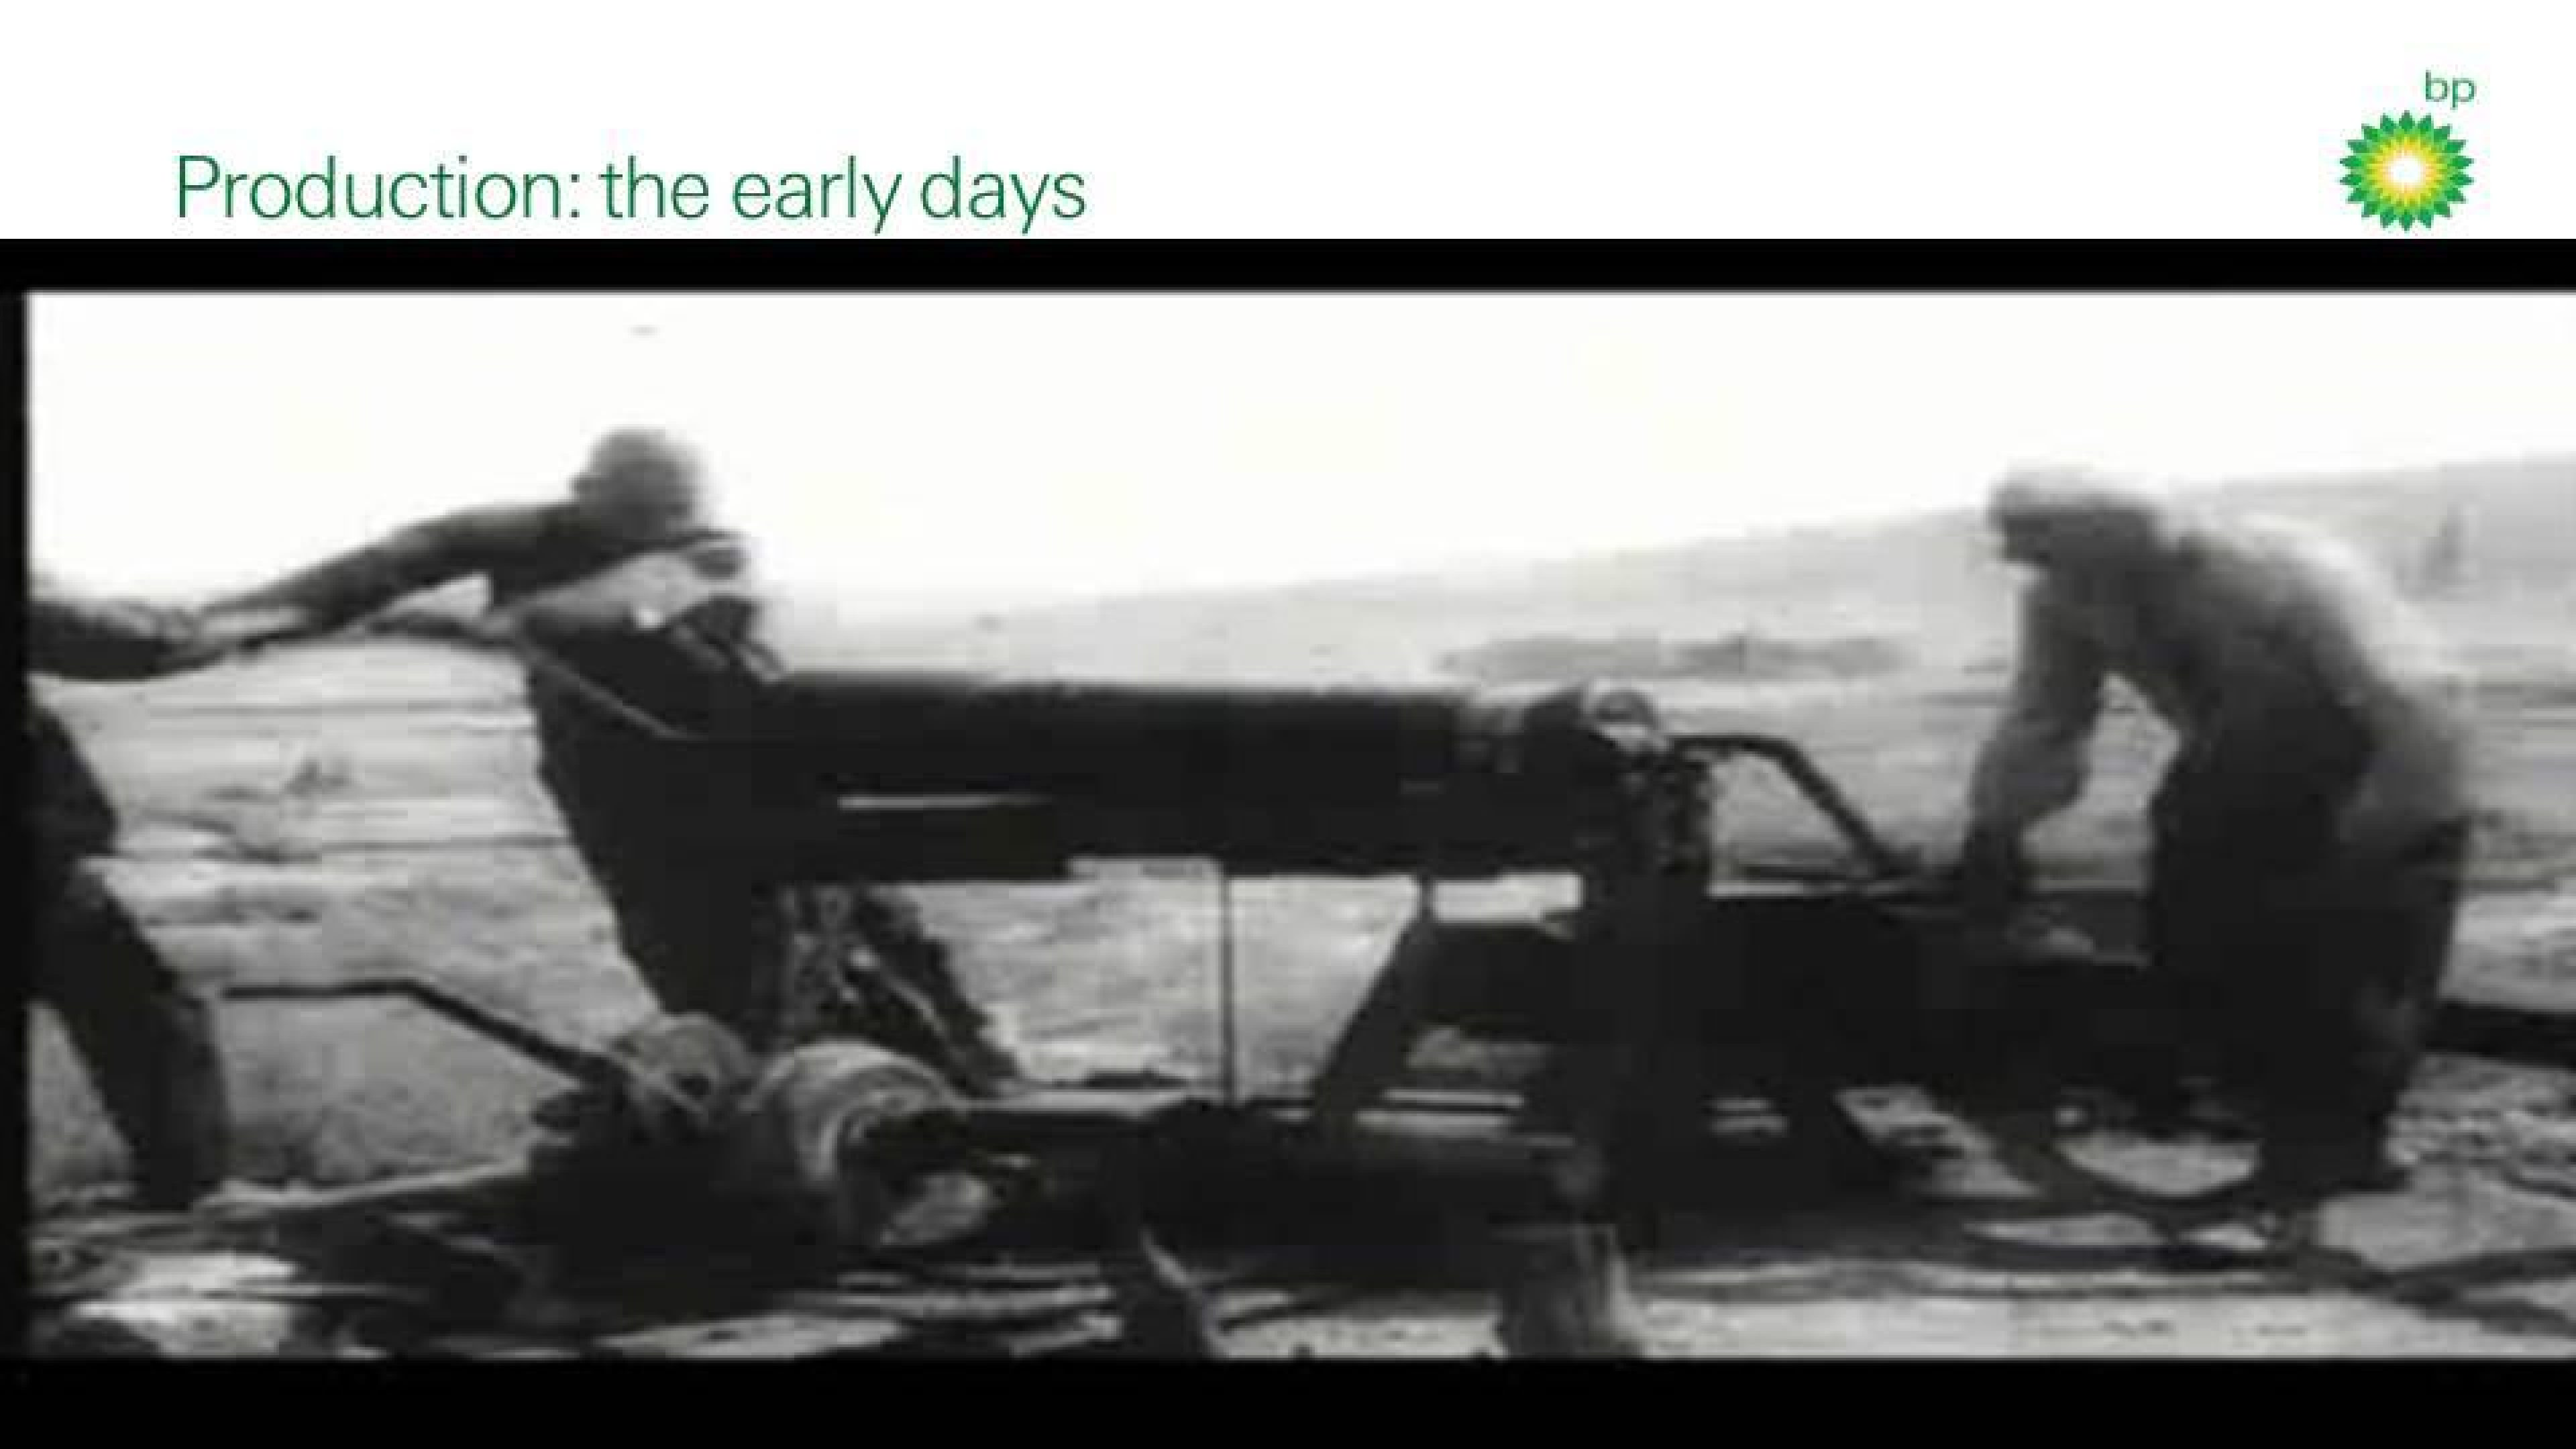 Production - the early days